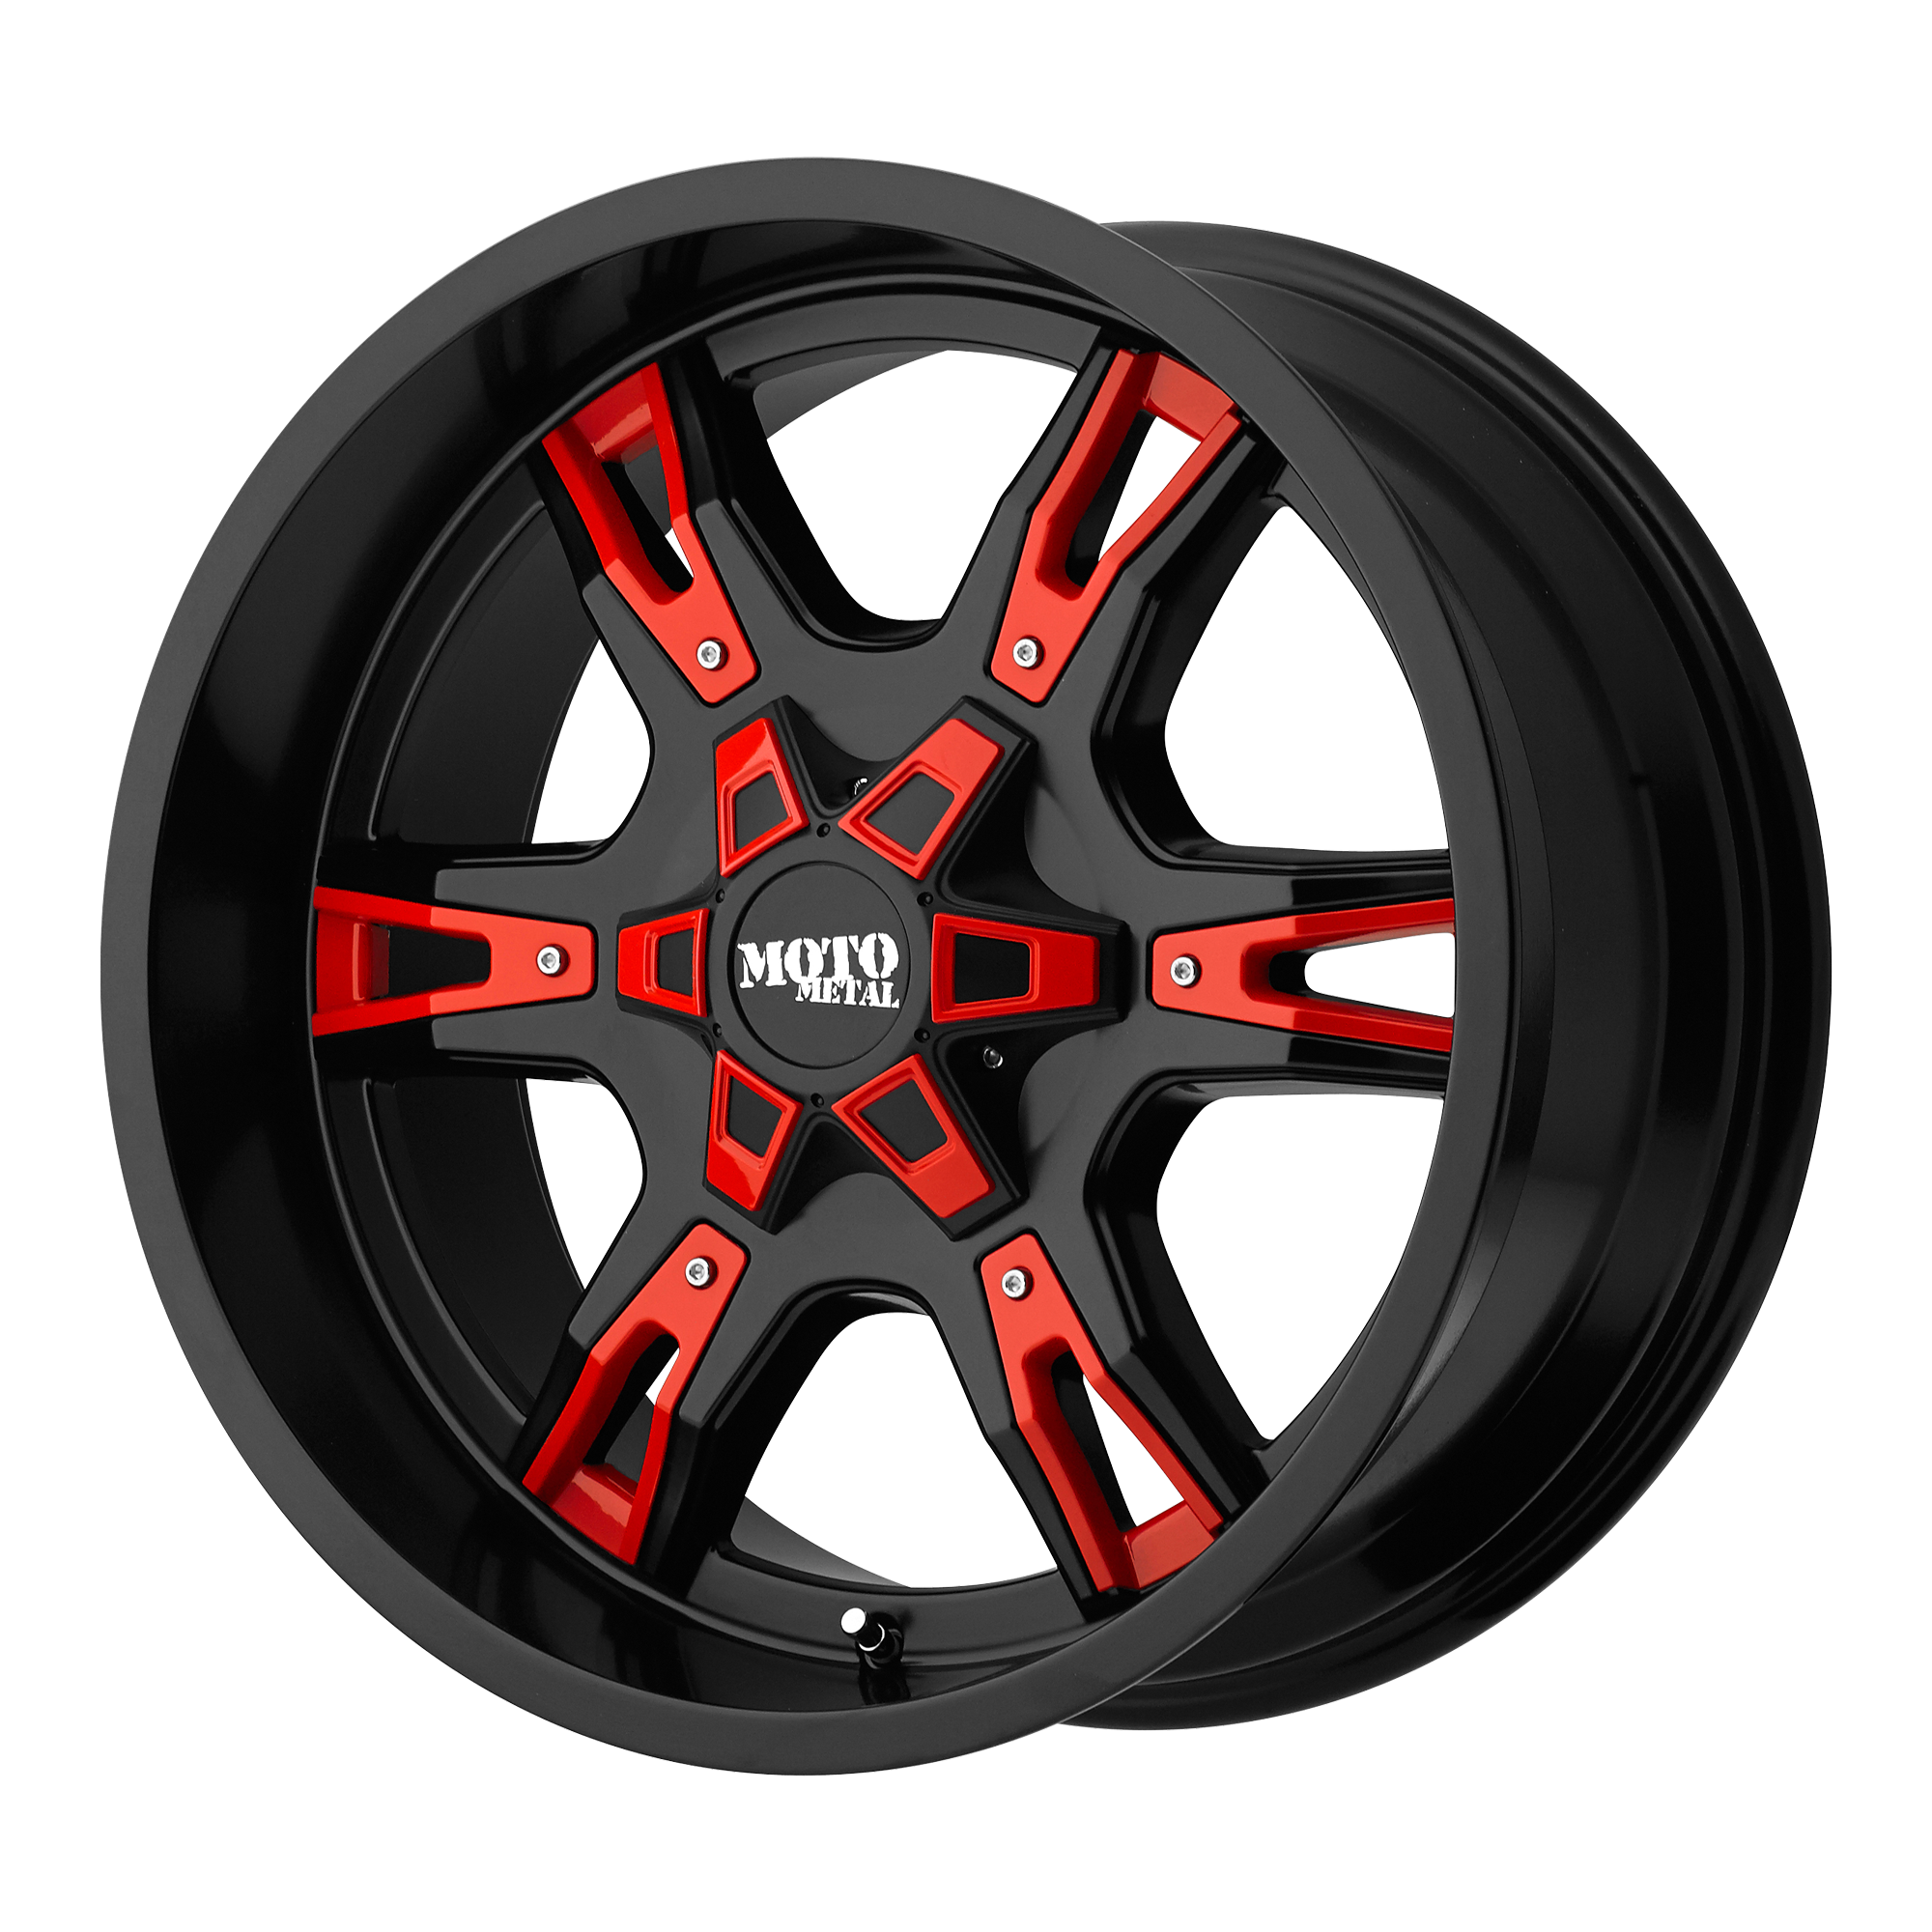 MOTO METAL MO969 hliníkové disky 12x20 5x127 ET-44 Satin Black With  Red And Chrome Accents